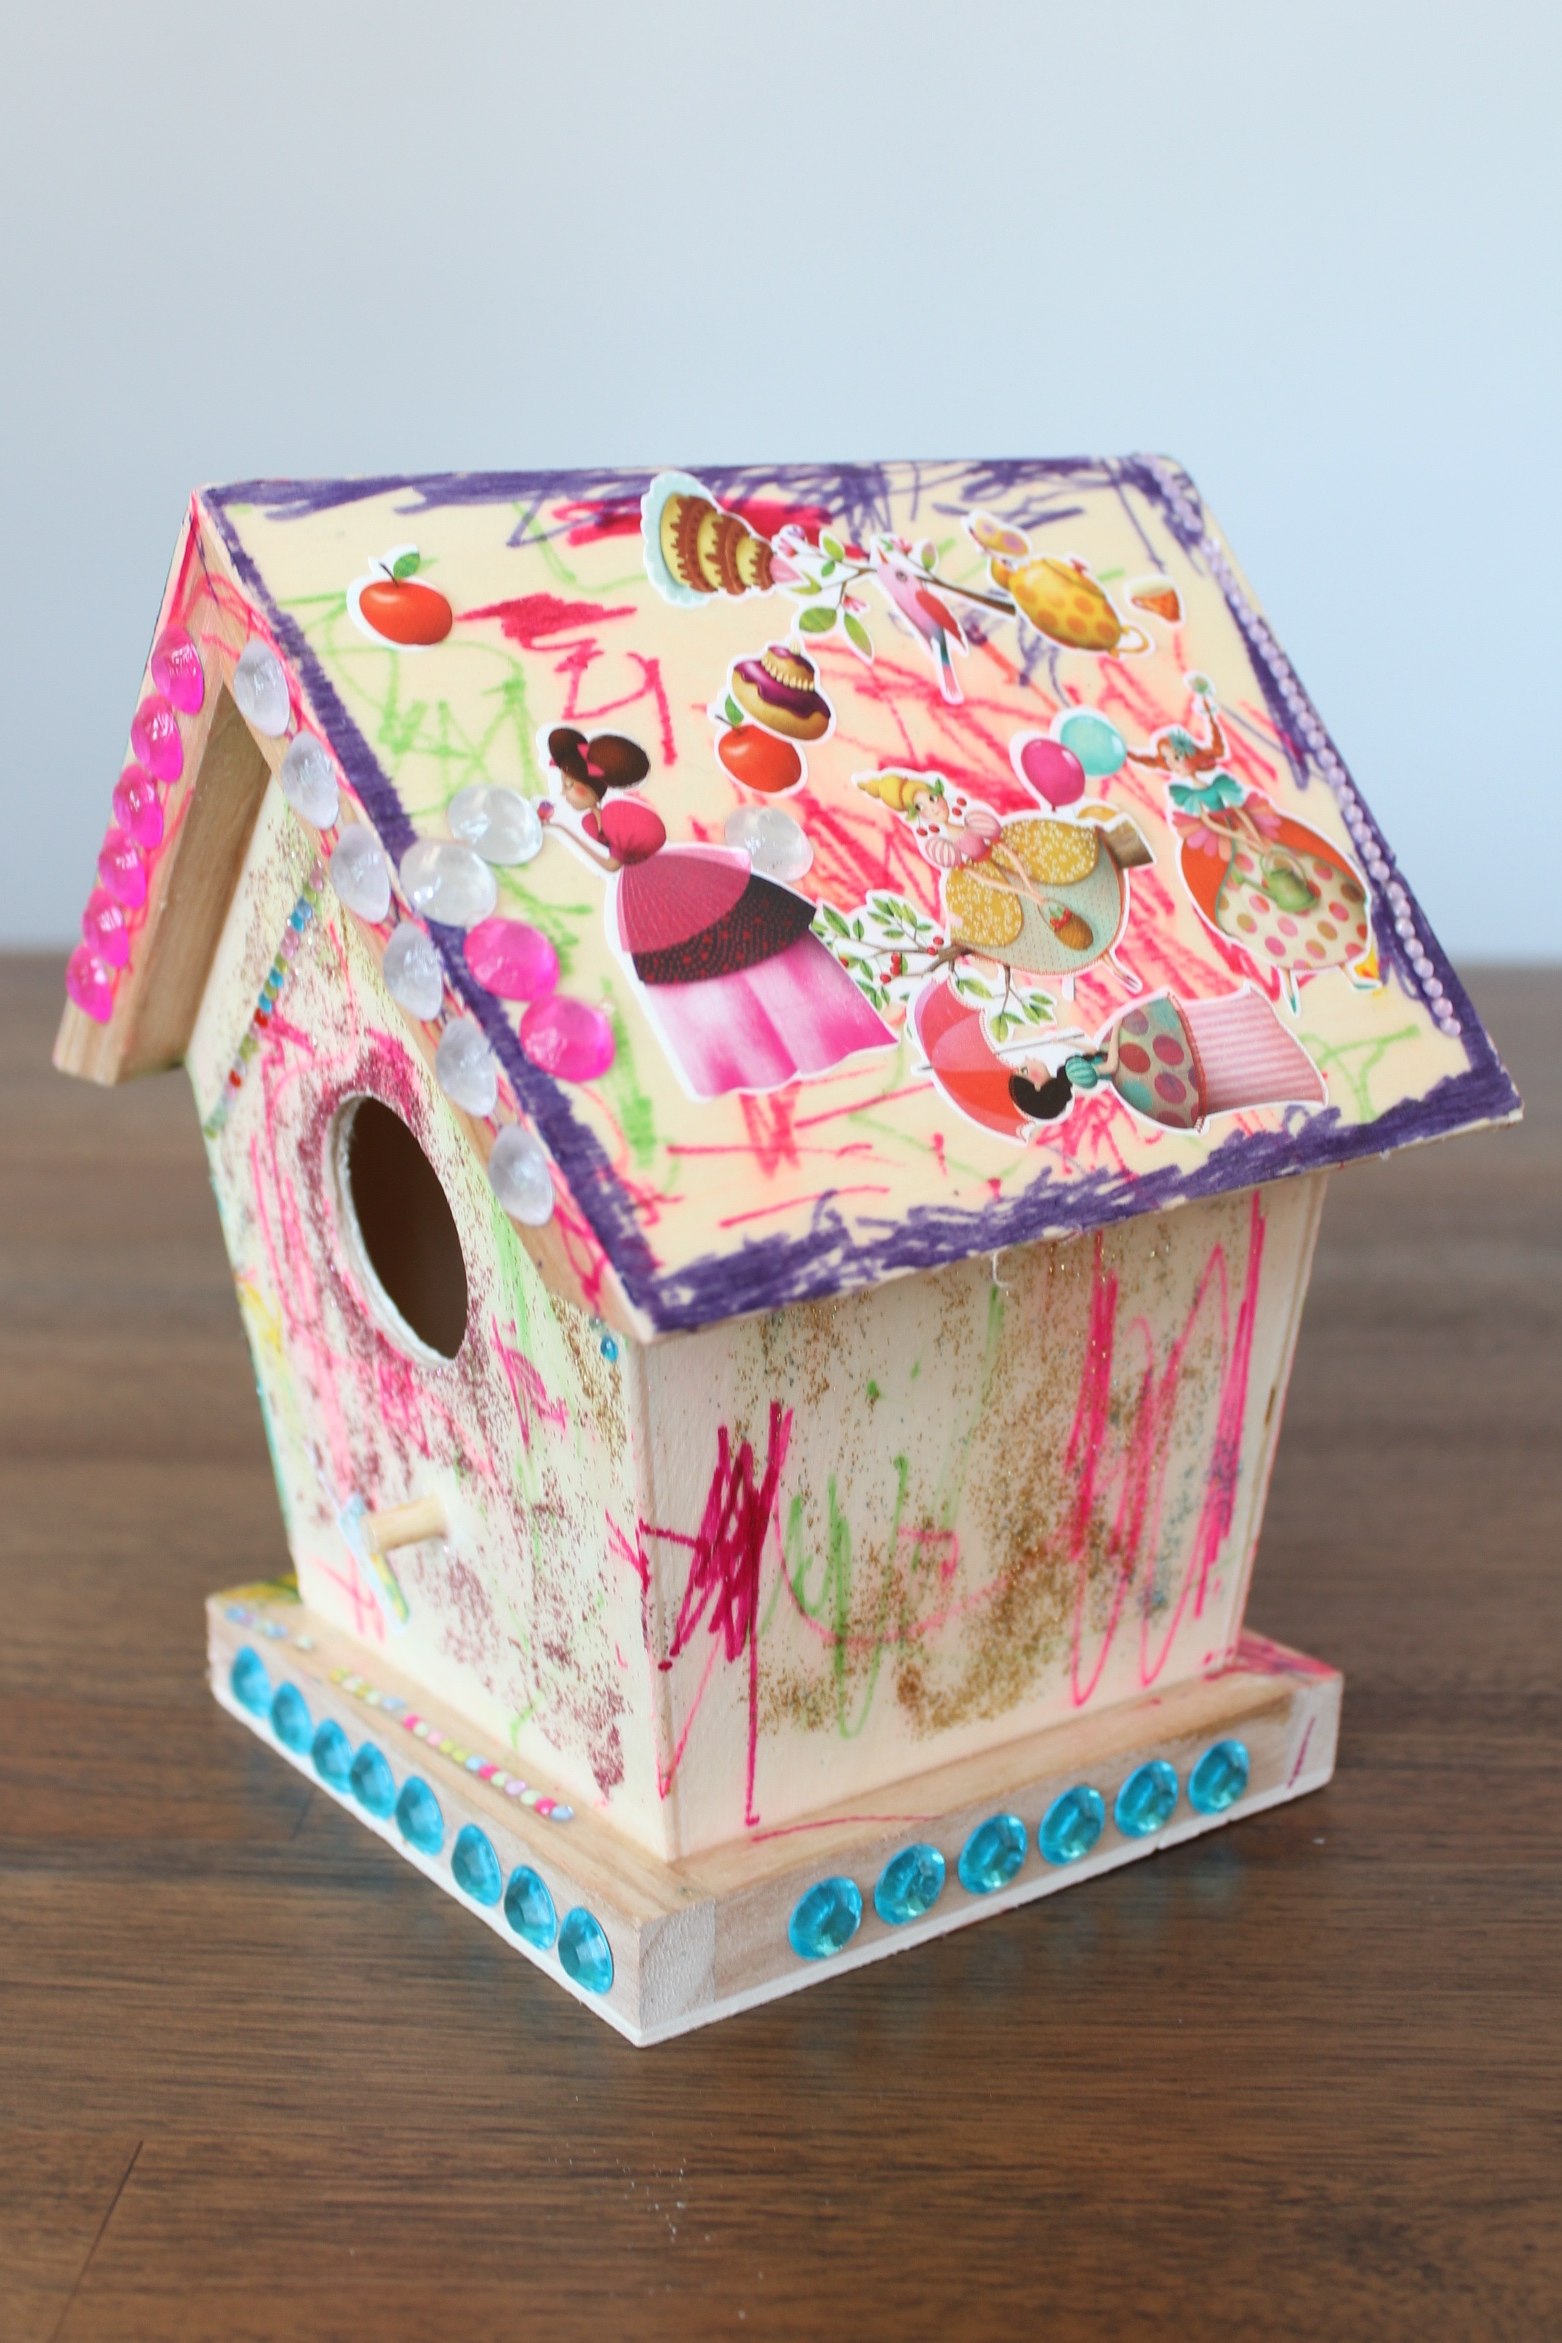 Birdhouse decorated by Maya and Haley